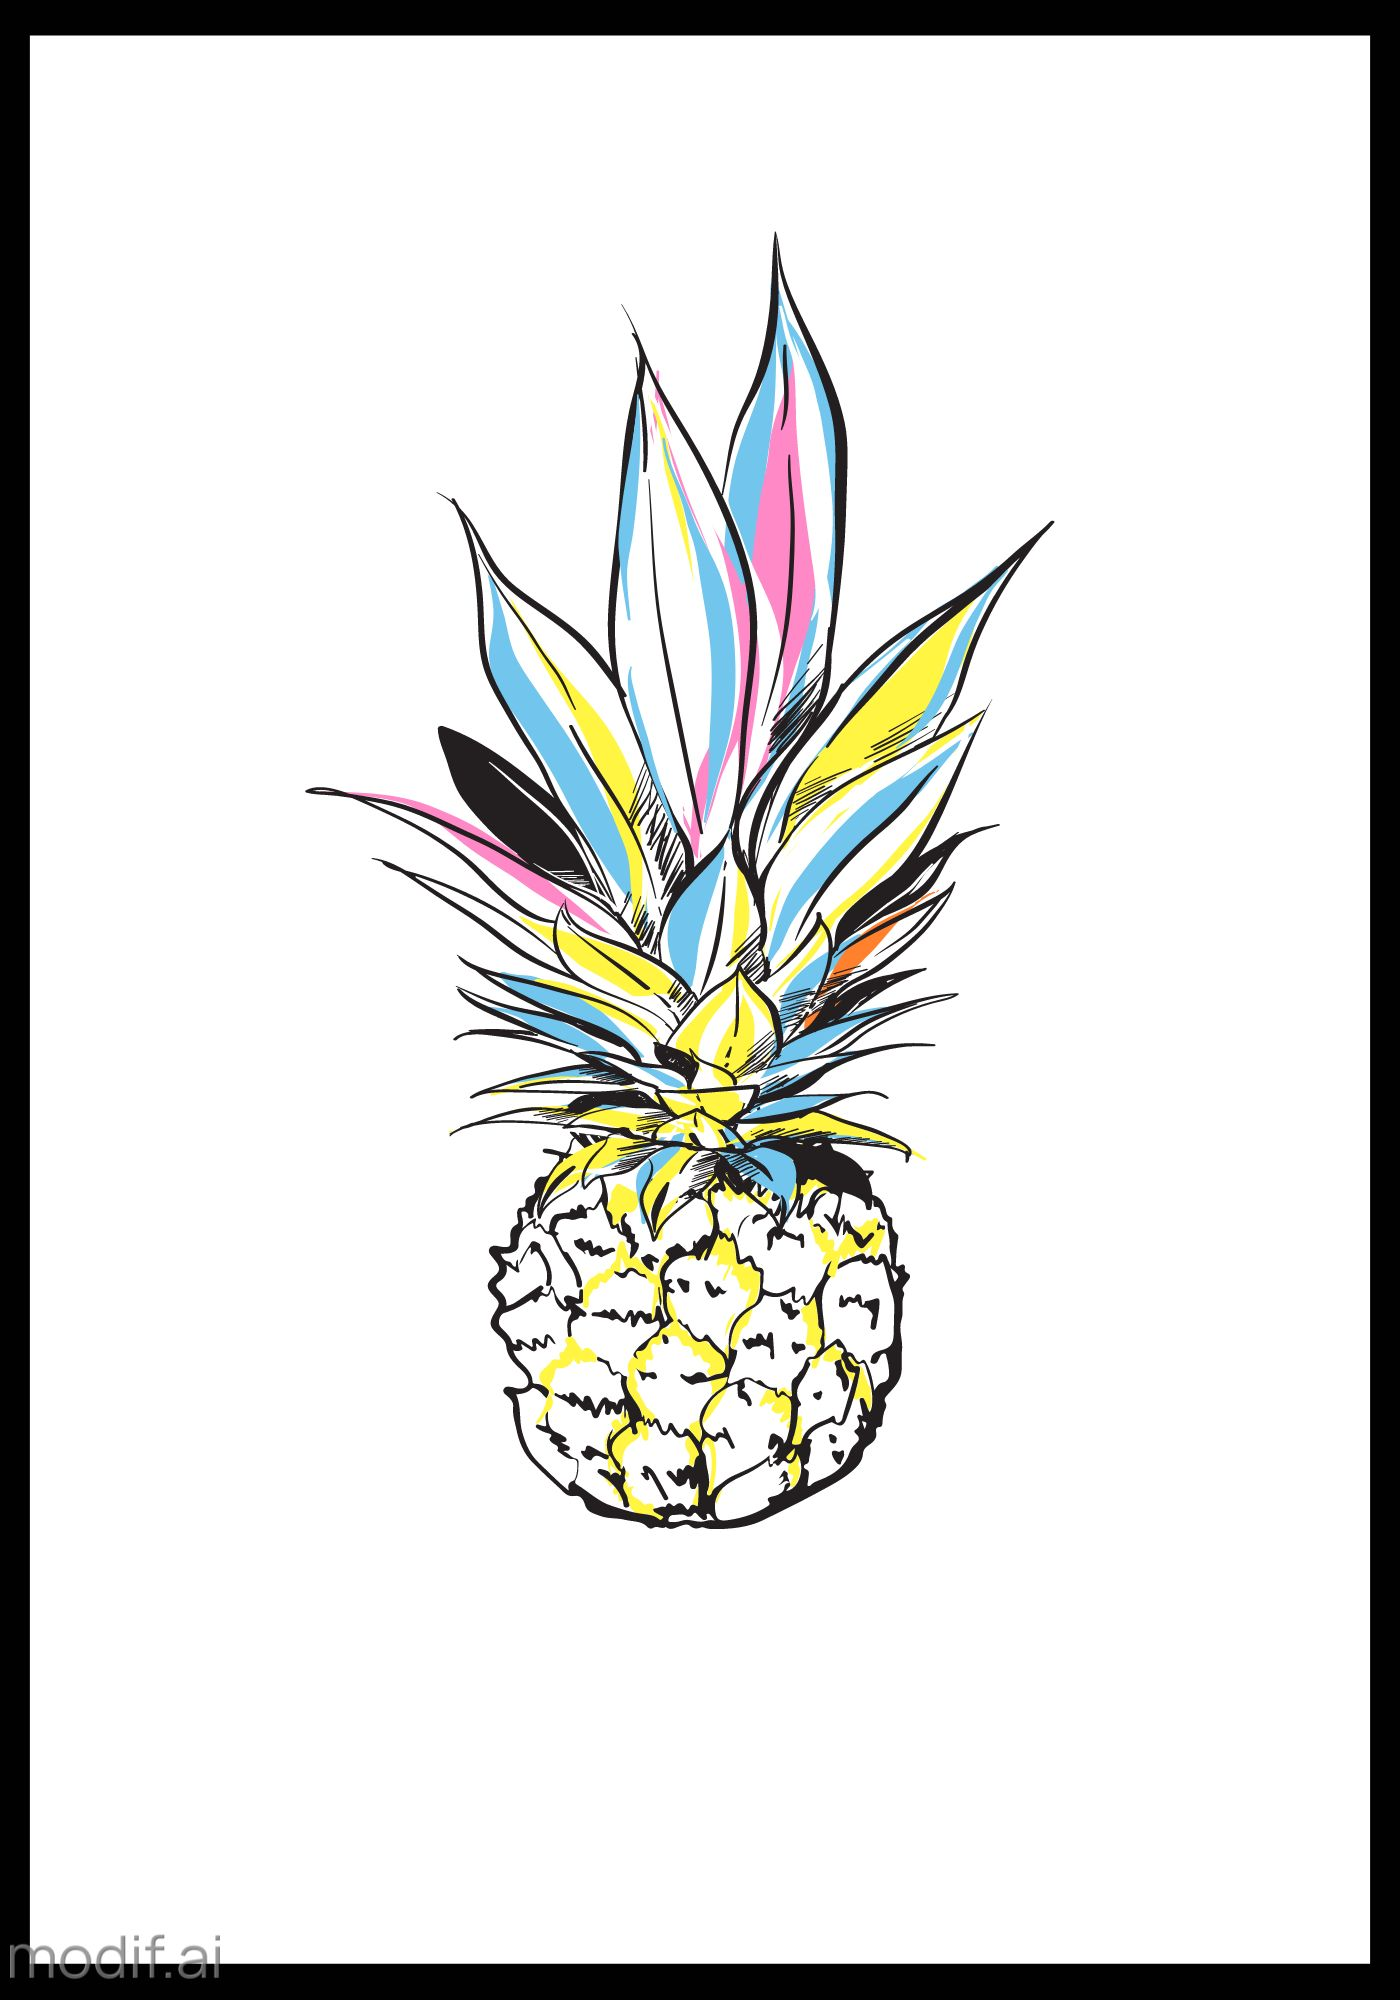 Bright Pineapple Wall Poster Template